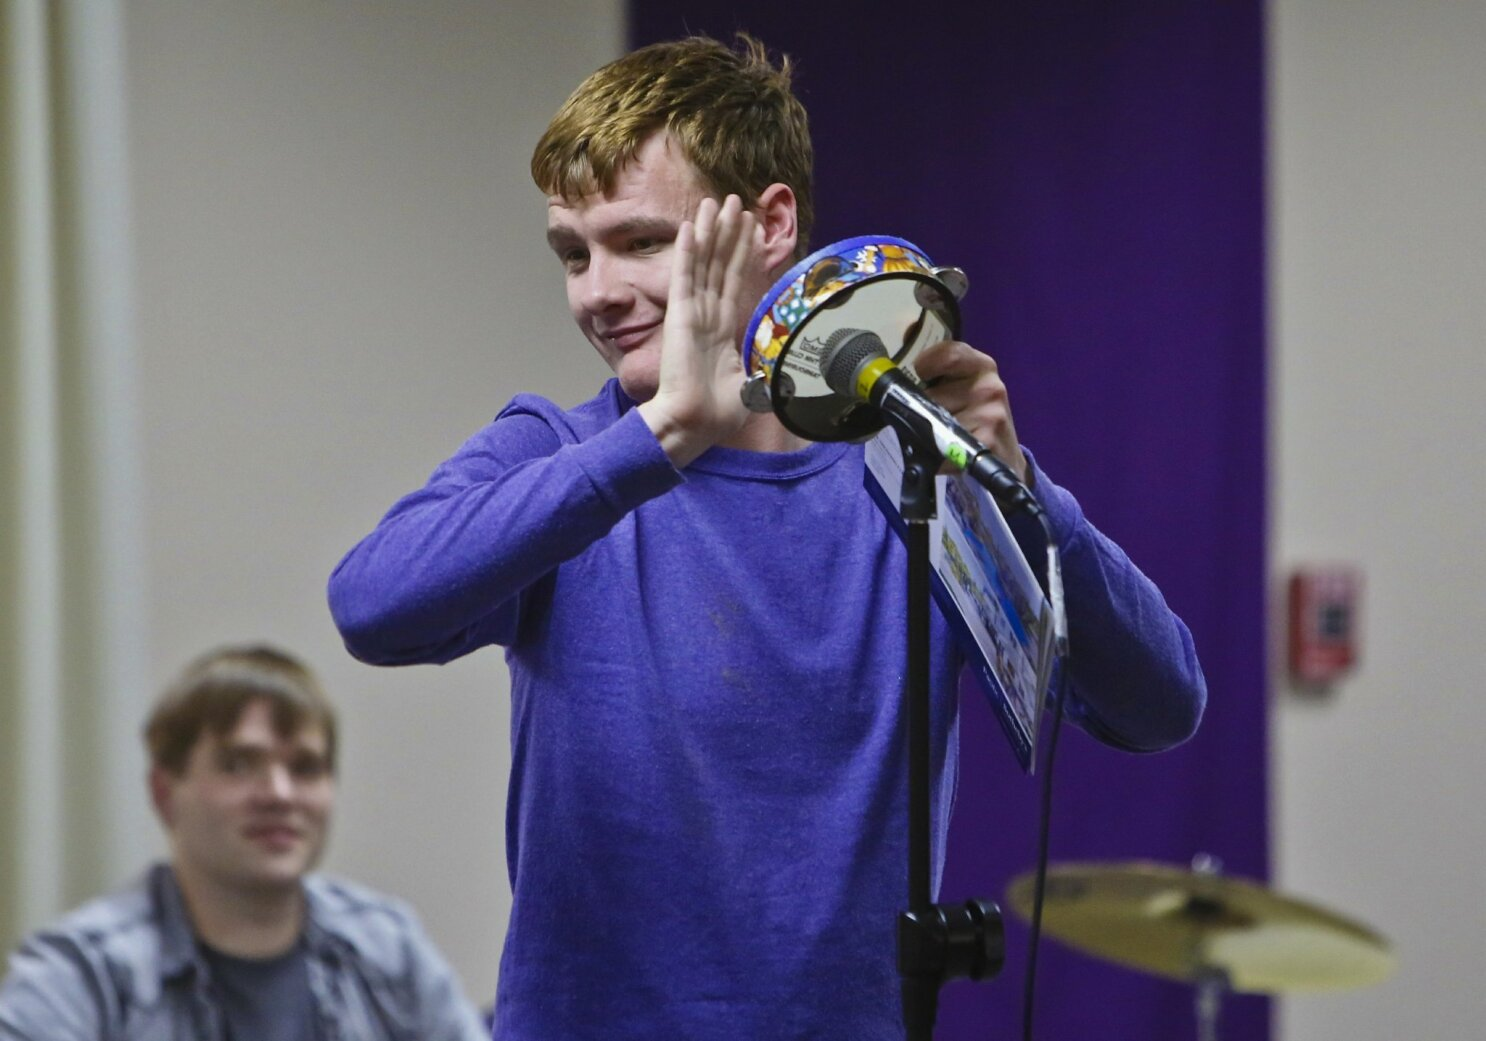 Record Breaking Grant May Fuel Autism >> Singer With Autism To Release First Cd The San Diego Union Tribune